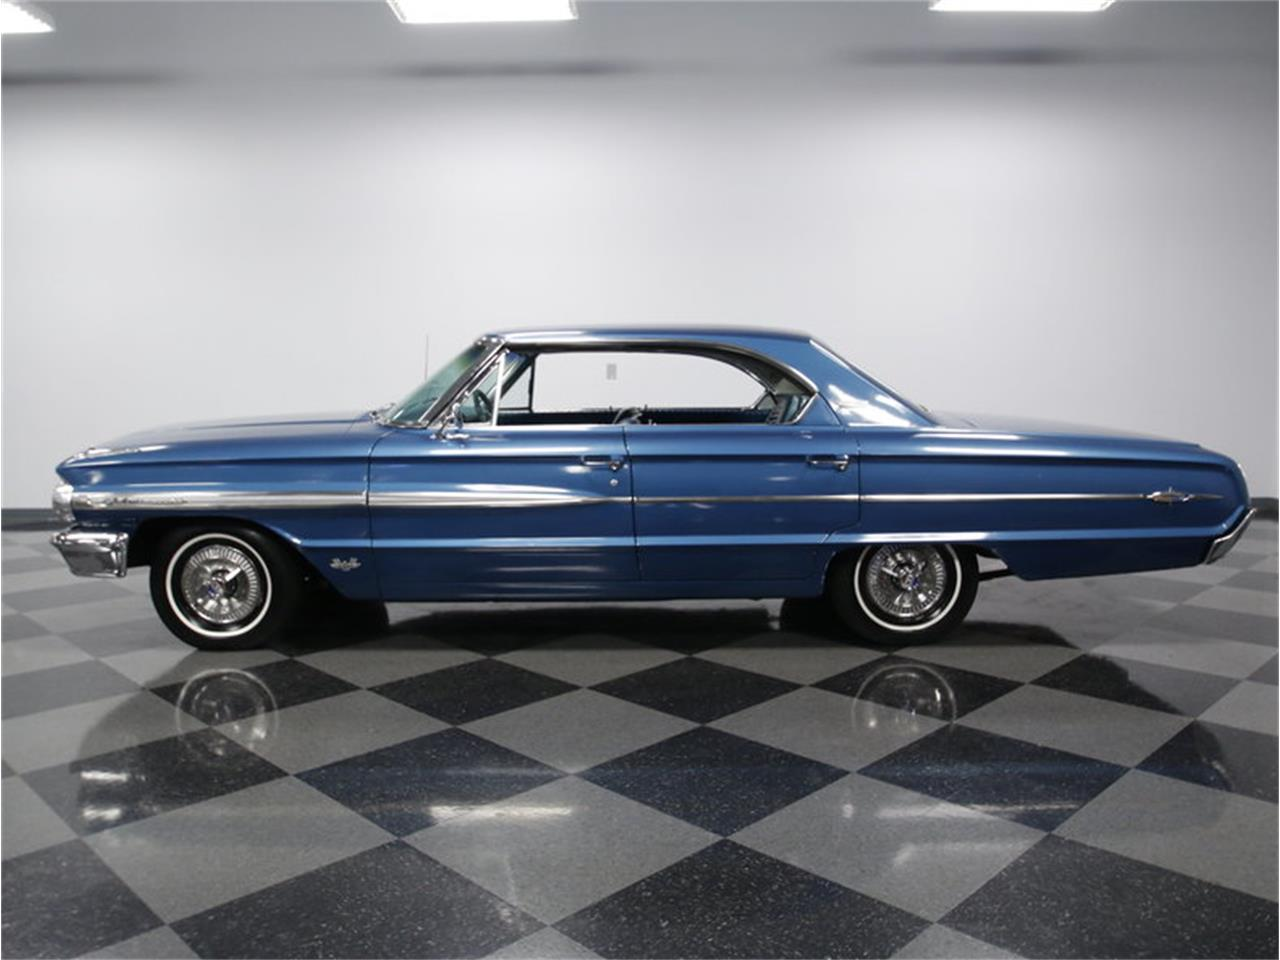 Large Picture of '64 Galaxie 500 XL located in Concord North Carolina - $17,995.00 Offered by Streetside Classics - Charlotte - L2UK